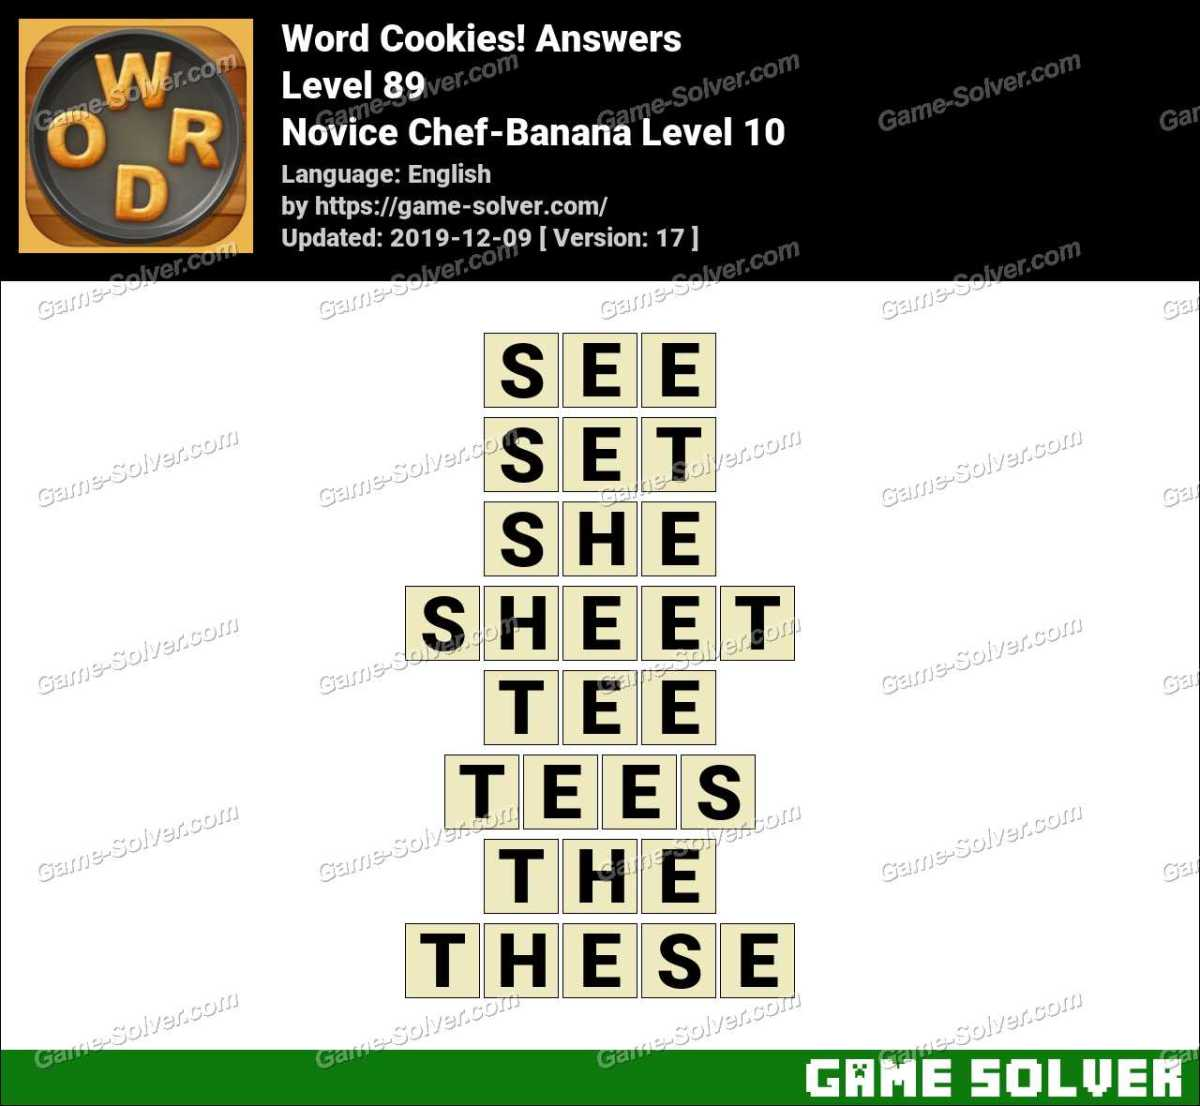 Word Cookies Novice Chef-Banana Level 10 Answers